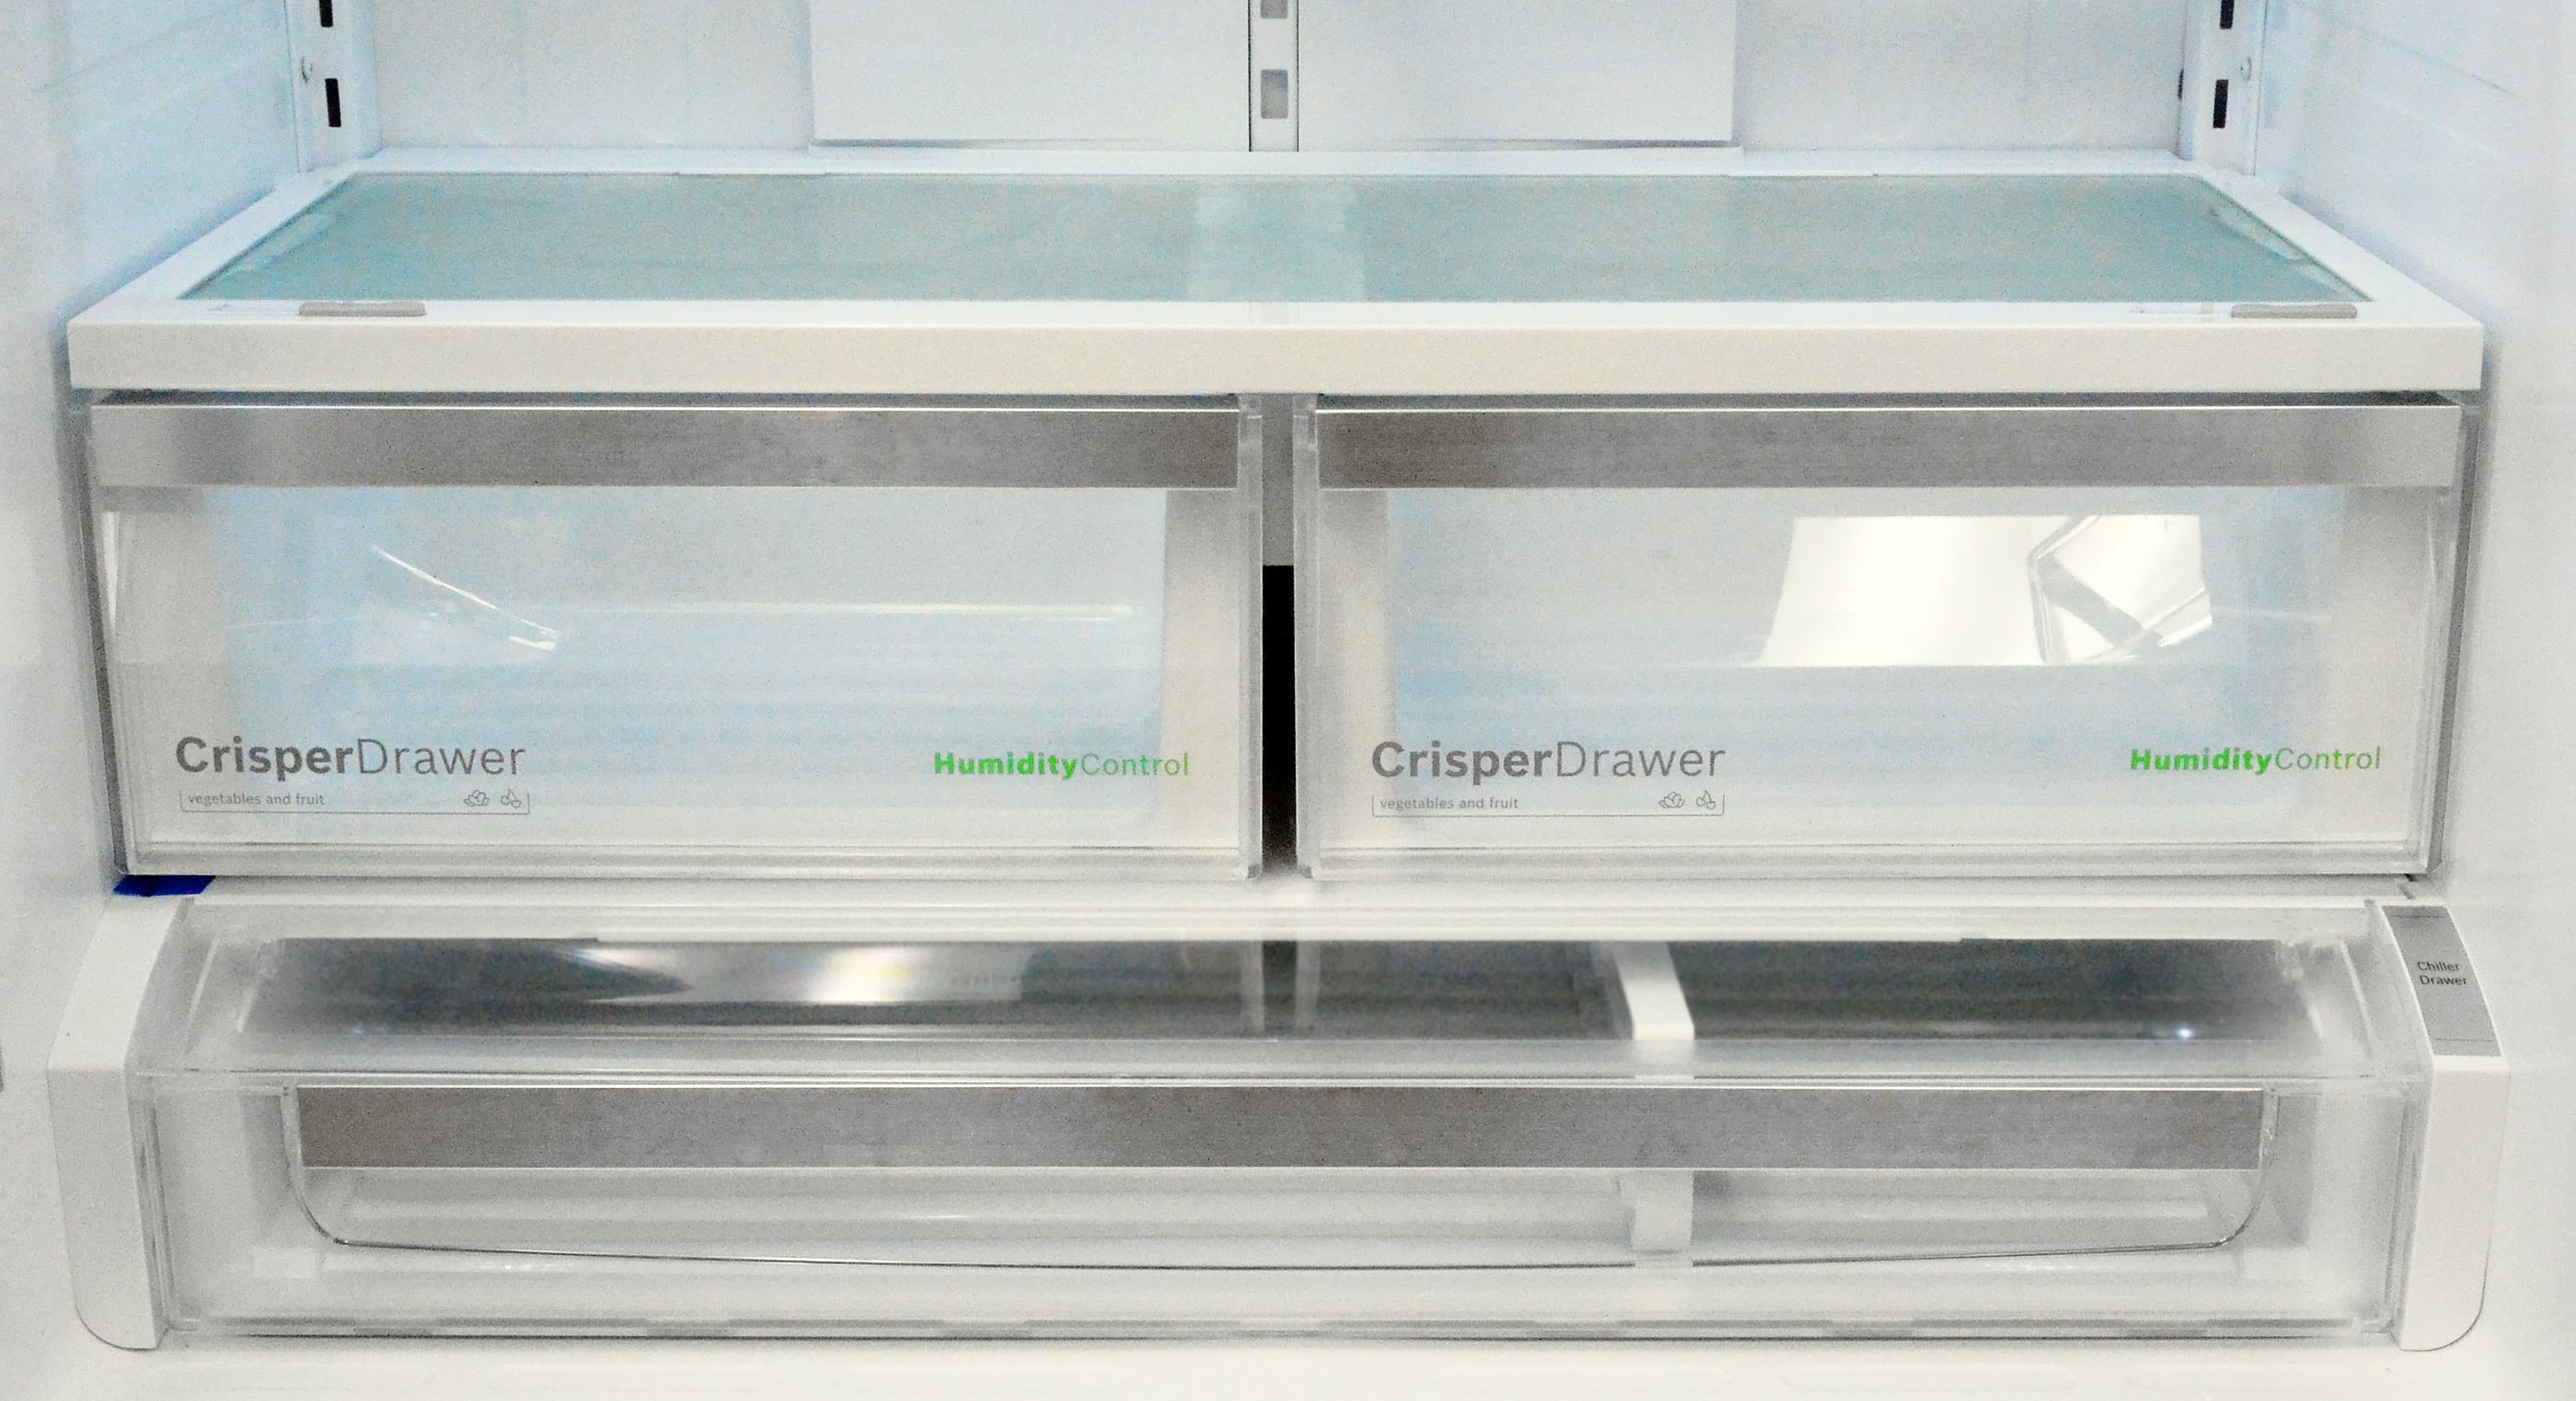 The matching crispers were the least impressive part of this fridge in terms of performance.